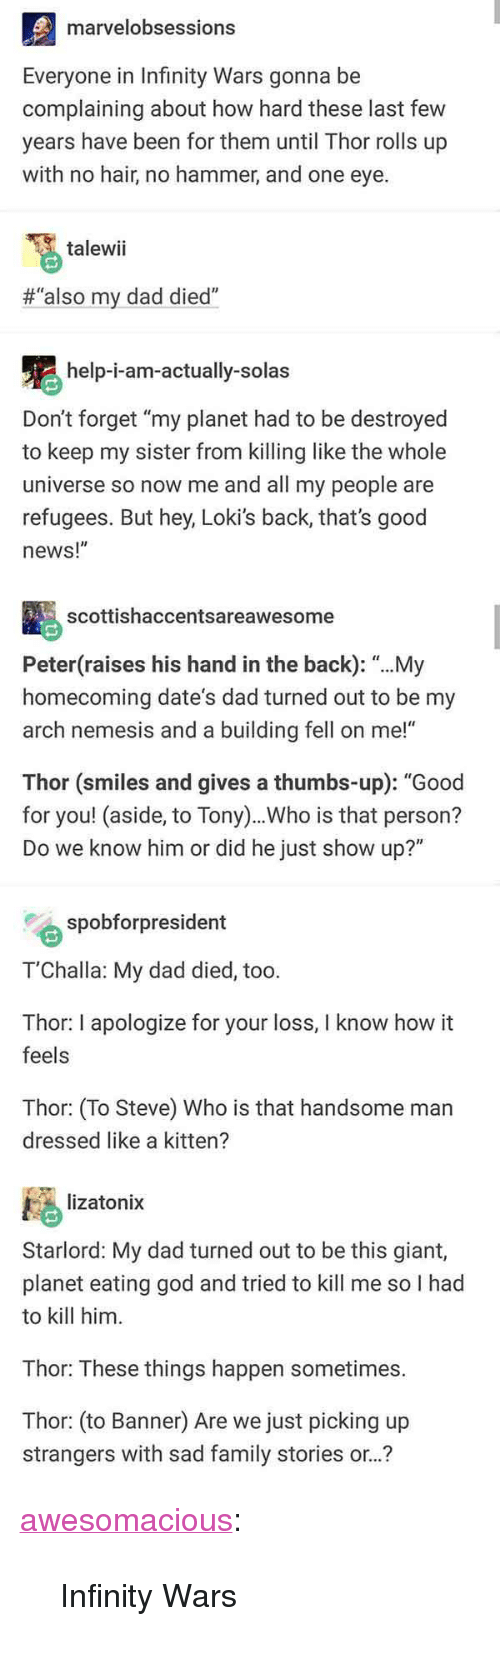 "Dad, Family, and God: marvelobsessions  Everyone in Infinity Wars gonna be  complaining about how hard these last few  years have been for them until Thor rolls up  with no hair, no hammer, and one eye.  talewii  #""also my dad died""  help-i-am-actually-solas  Don't forget ""my planet had to be destroyed  to keep my sister from killing like the whole  universe so now me and all my people are  refugees. But hey, Loki's back, that's good  news!""  scottishaccentsareawesome  Peter(raises his hand in the back): ""...My  homecoming date's dad turned out to be my  arch nemesis and a building fell on me!""  Thor (smiles and gives a thumbs-up): ""Good  for you! (aside, to Tony)..Who is that person?  Do we know him or did he just show up?""  spobforpresident  T'Challa: My dad died, too.  Thor: I apologize for your loss, I know how it  feels  Thor: (To Steve) Who is that handsome man  dressed like a kitten?  lizatonix  Starlord: My dad turned out to be this giant,  planet eating god and tried to kill me so I had  to kill him  Thor: These things happen sometimes.  Thor: (to Banner) Are we just picking up  strangers with sad family stories or..? <p><a href=""http://awesomacious.tumblr.com/post/172727010645/infinity-wars"" class=""tumblr_blog"">awesomacious</a>:</p>  <blockquote><p>Infinity Wars</p></blockquote>"